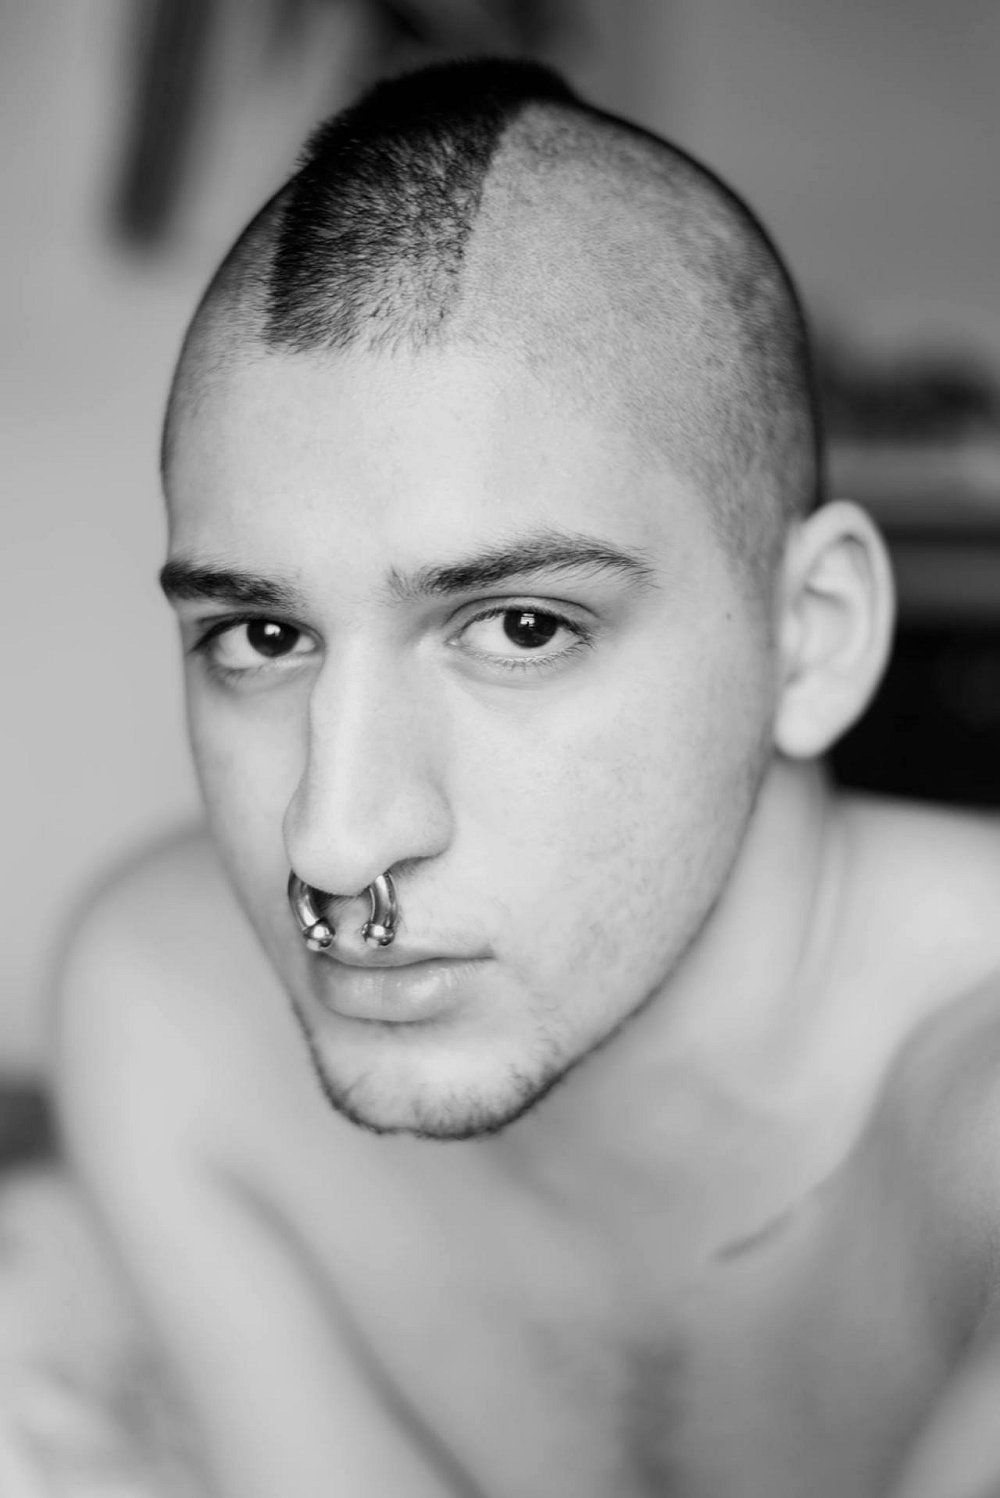 Piercing nose man  This site is a collection of cool boys and guys expressing